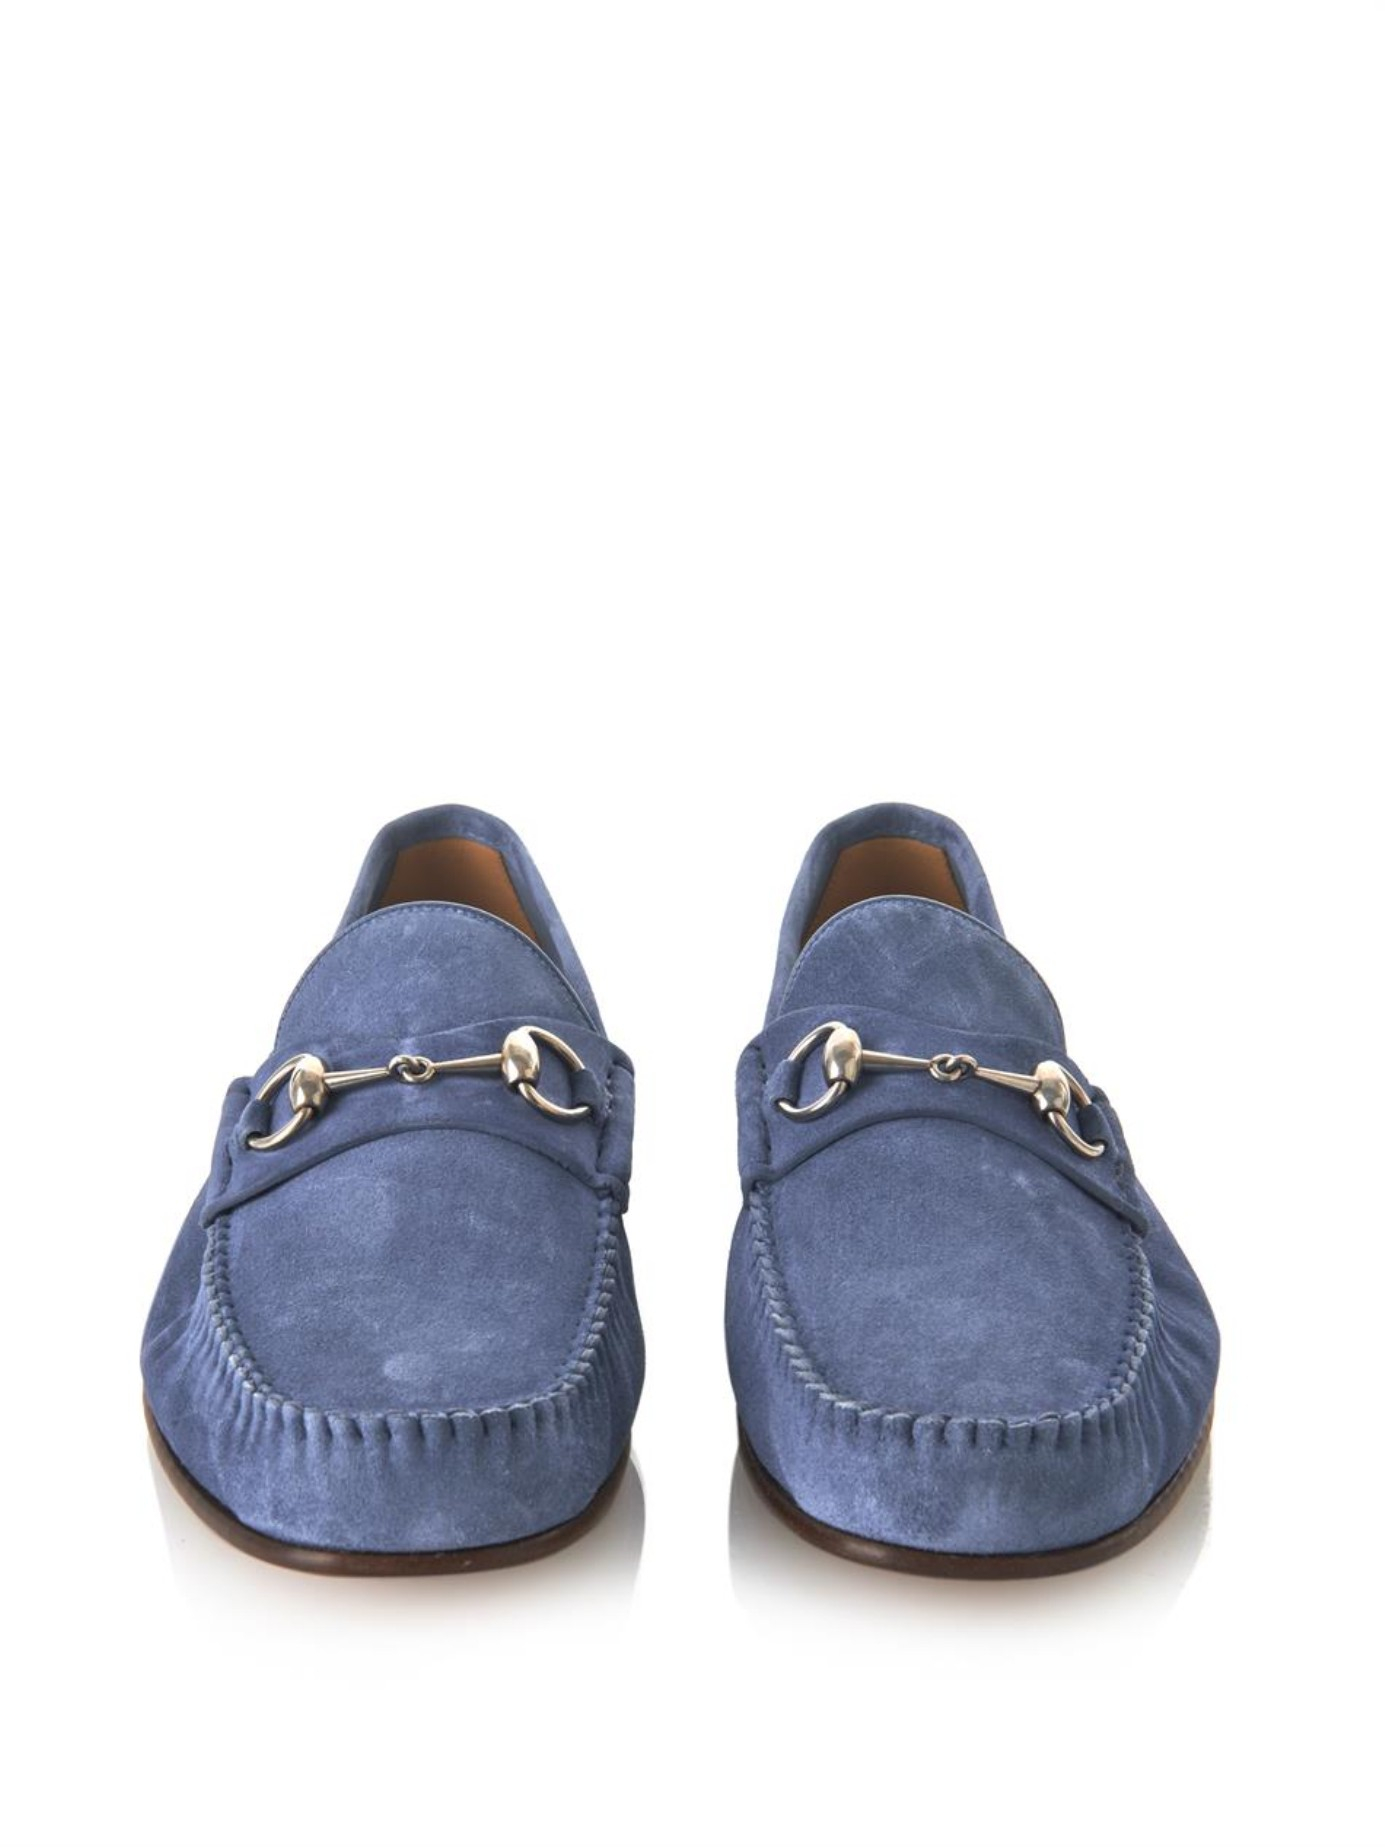 2f9aa909544 Lyst - Gucci Roos Suede Loafers in Blue for Men